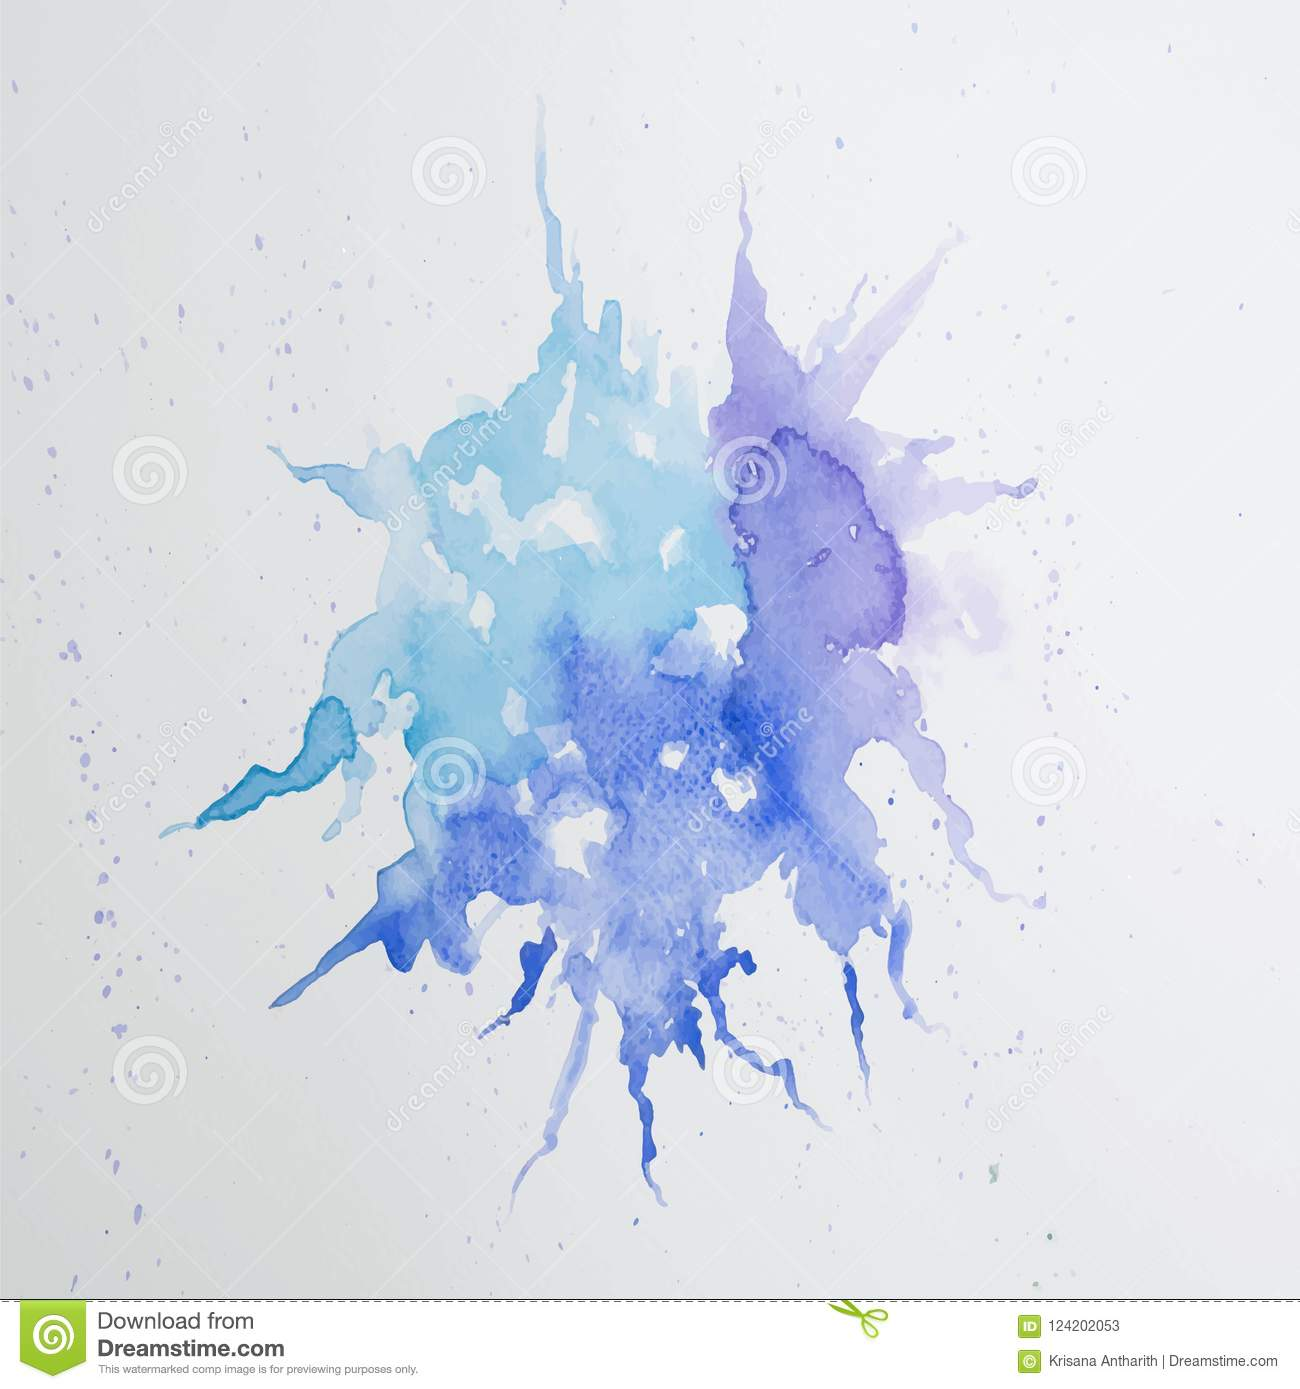 Abstract water colorful painting. Pastel color vector illustration concept.